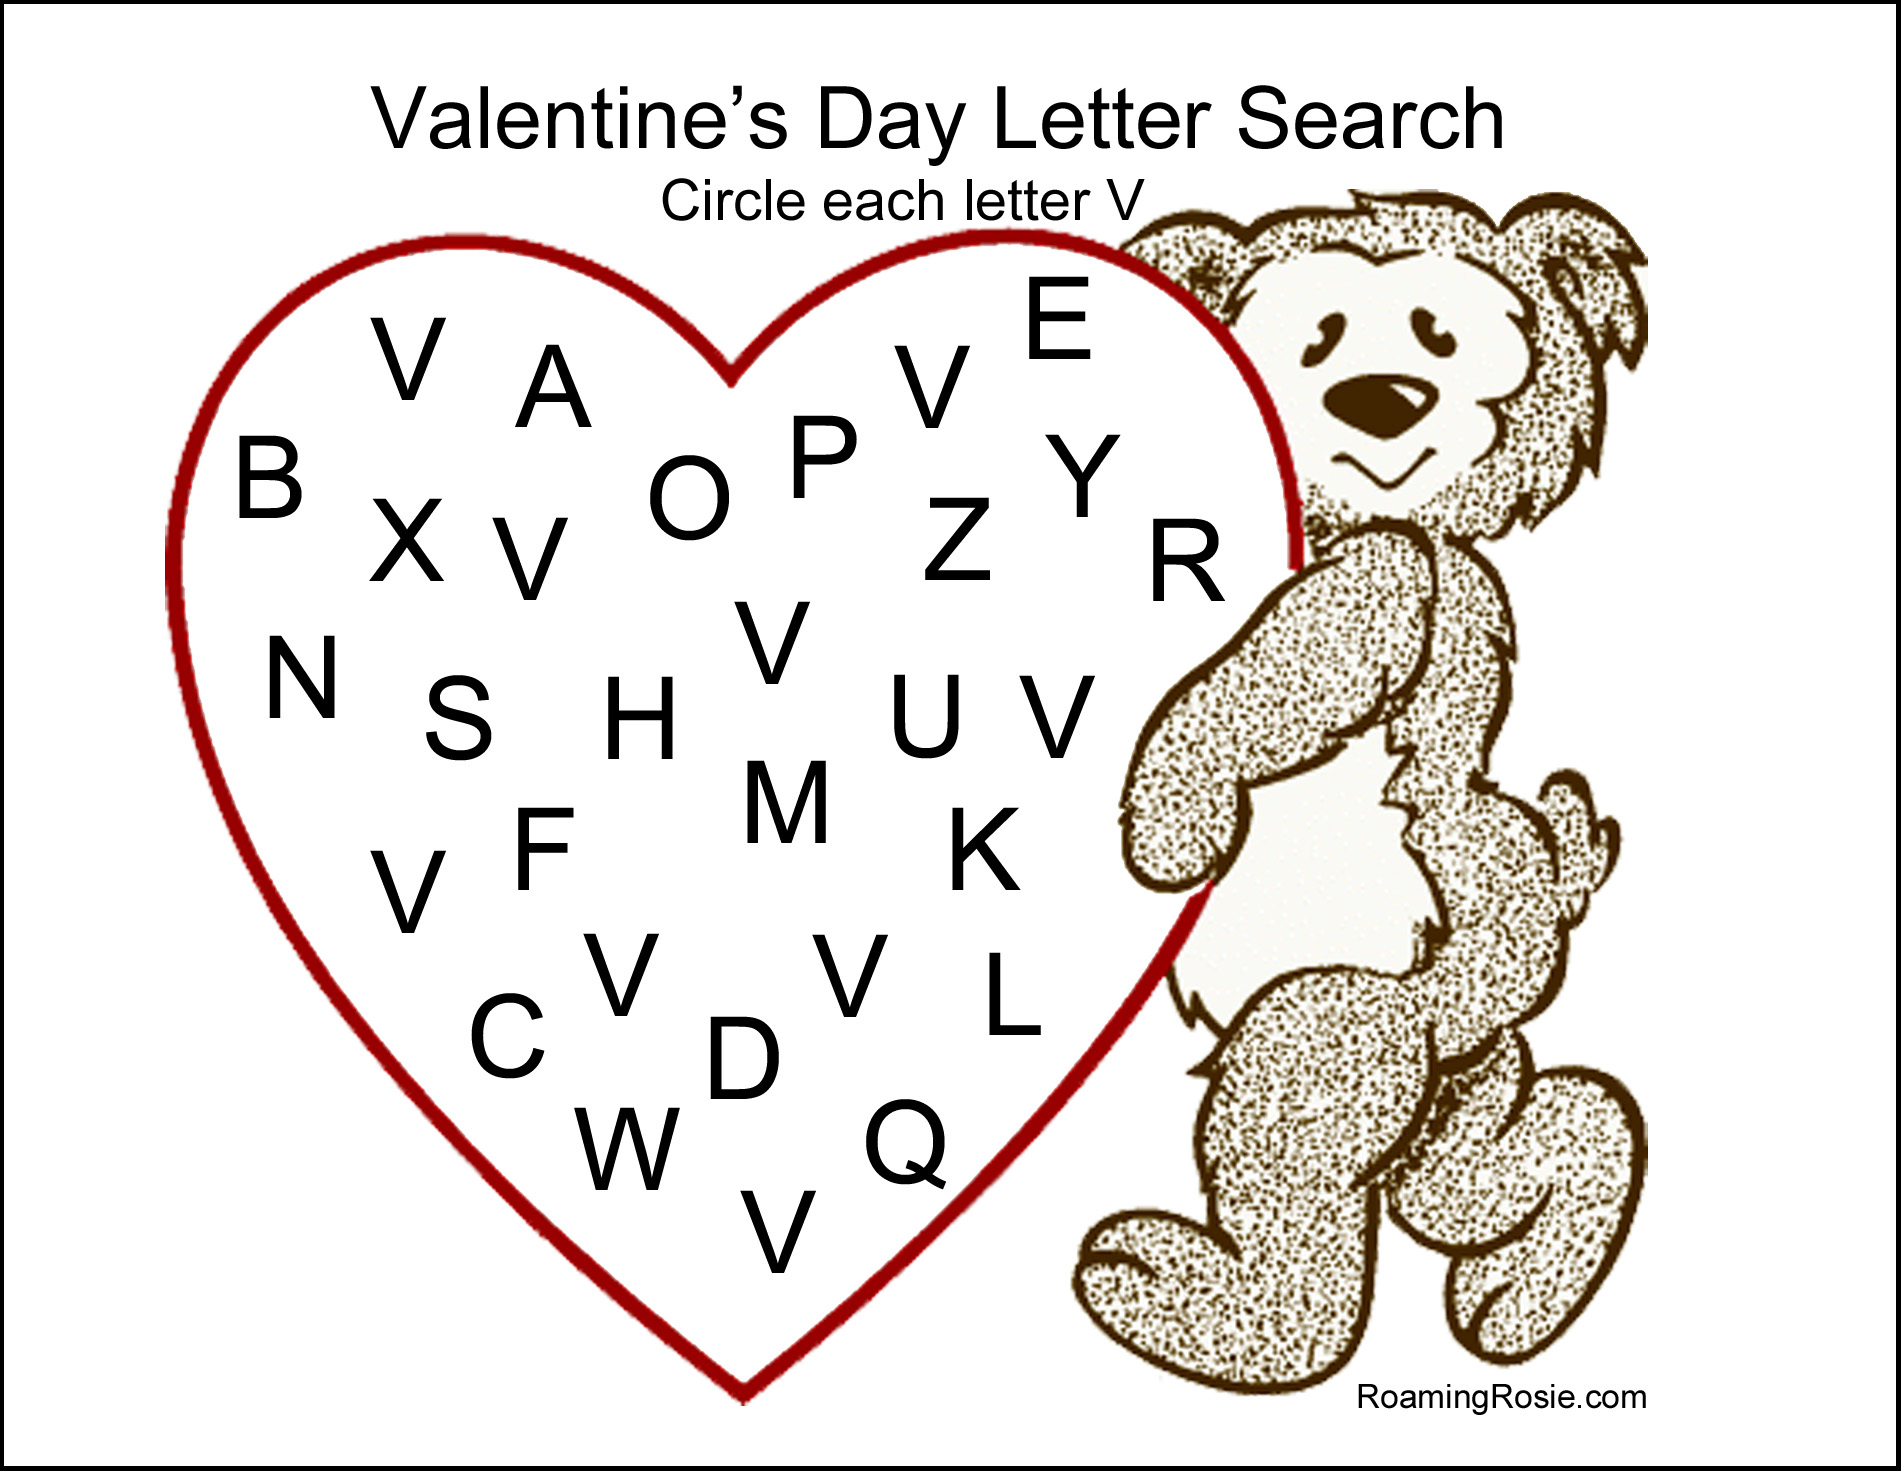 graphic about Free Printable Valentine Worksheets titled Valentines Working day Letter Glimpse Free of charge Printable Worksheet